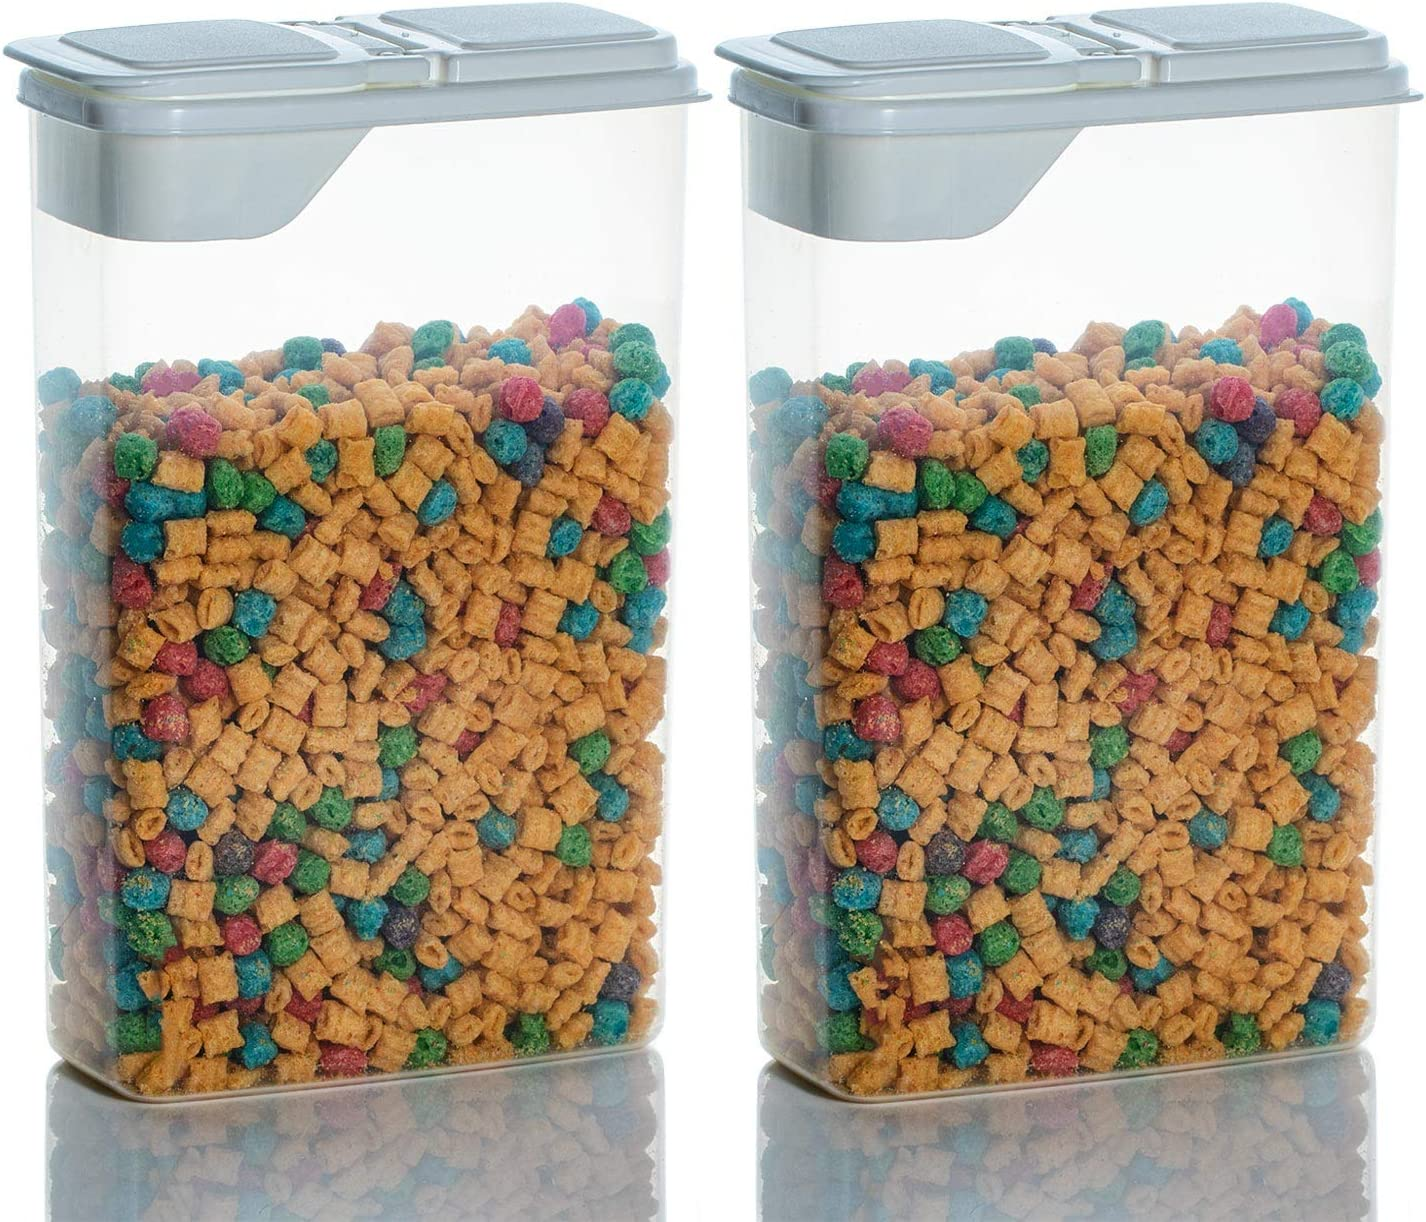 2 Pack Cereal, Snack, and Dry Goods 4 Quart Food Storage Keeper and Dispenser Container with Flip Top Lid